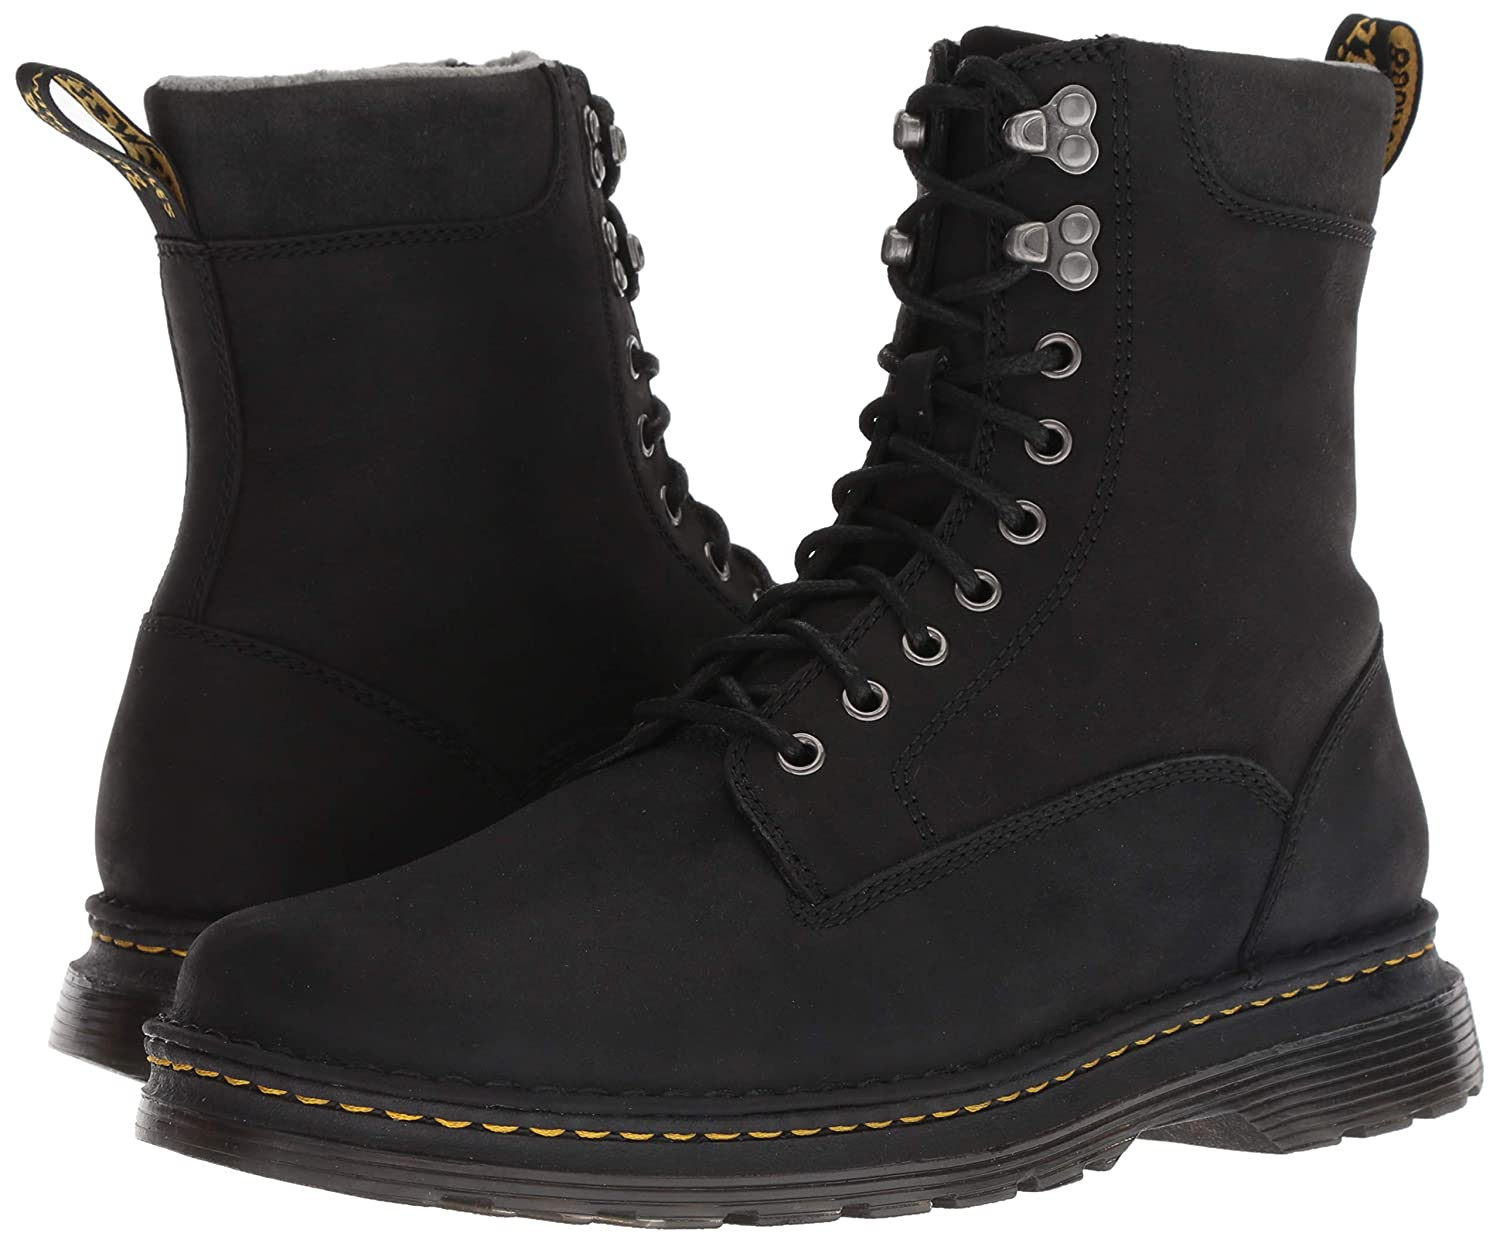 Dr. Dr. Dr. Martens Men's Vincent Hook Mid Calf Stiefel, schwarz, 9 M UK (10 US) e5771d